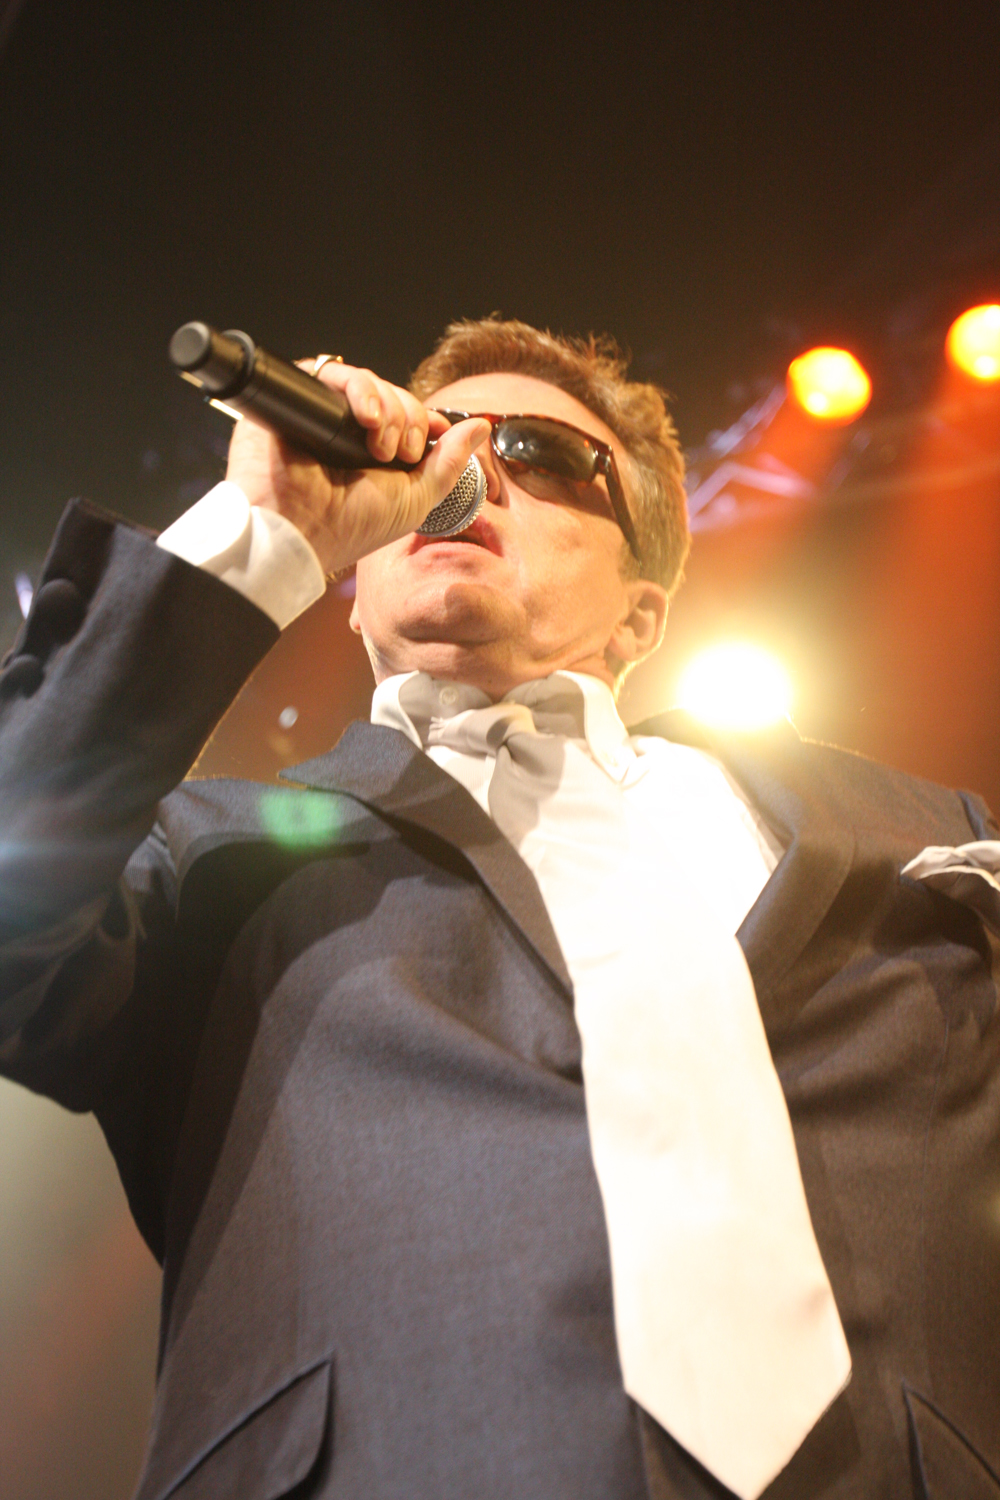 madness_06_montreux-jazz-festival-2008_IMG_6945.jpg